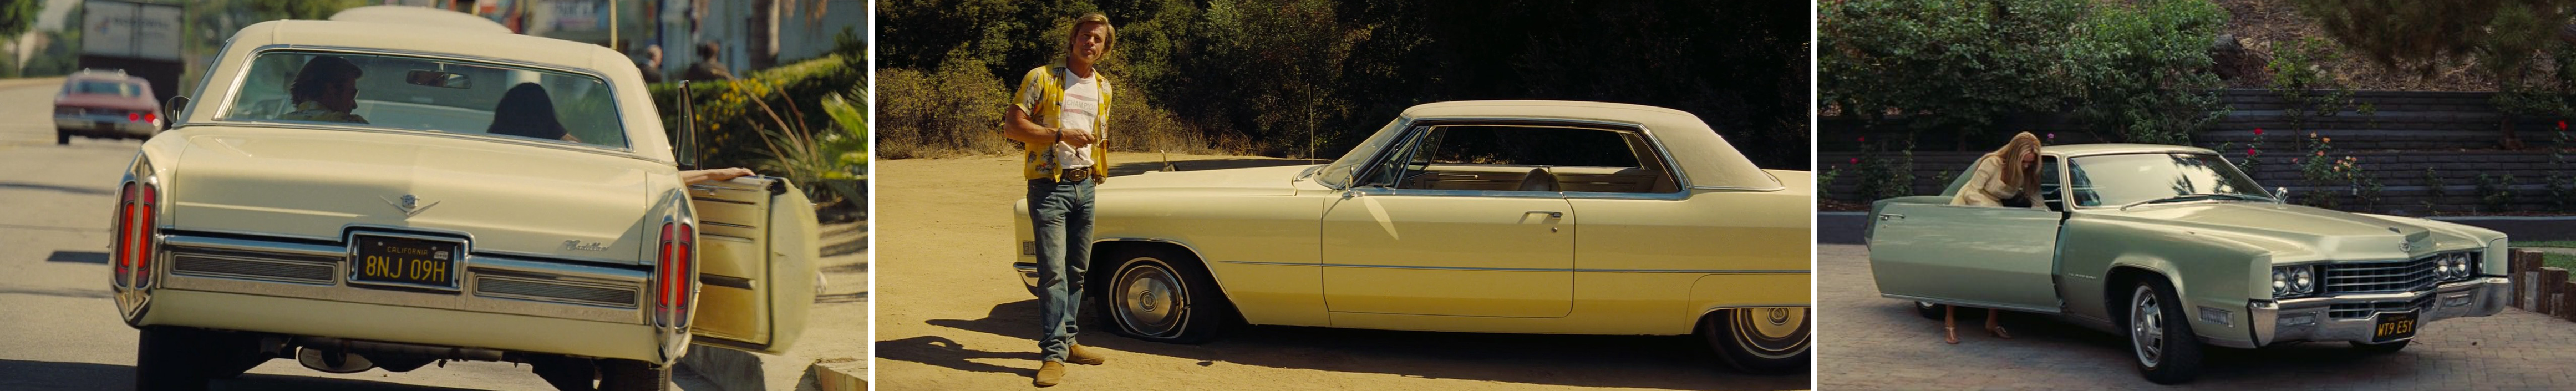 top 10 brands, product placement, brands, movies, entertainment marketing, branded integration, brand integration, integration marketing, analysis, valuation, metrics, measurement, once upon a time in hollywood, quentin tarantino, cadillac ,deville, 1966, brad pitt